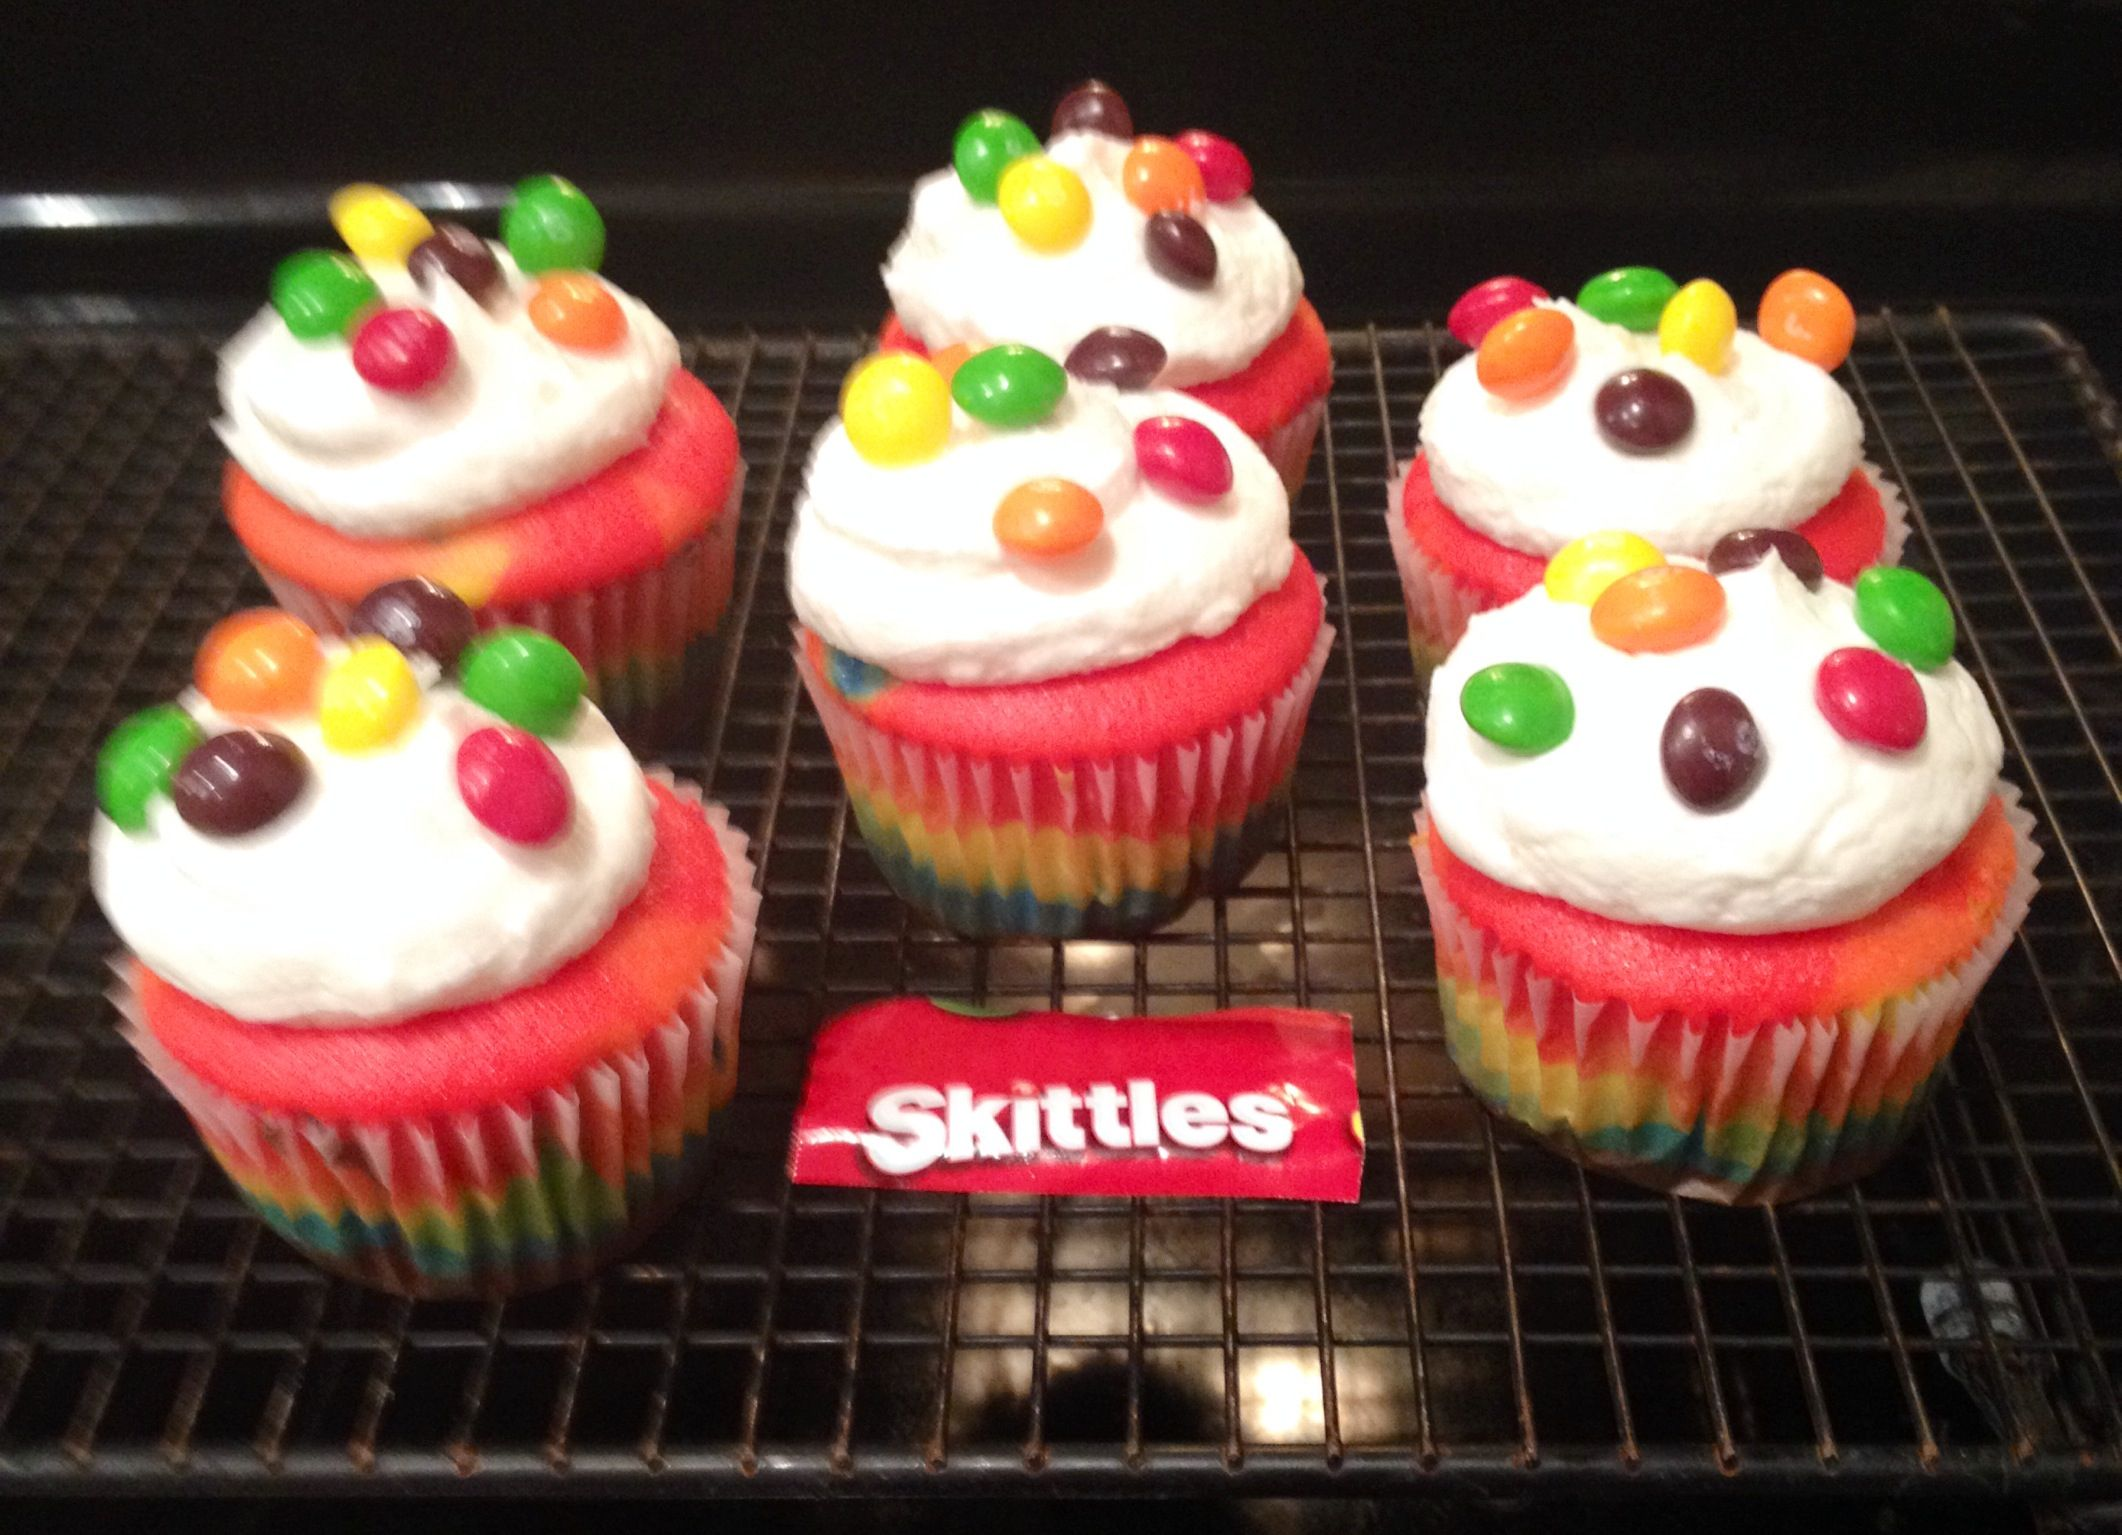 Skittles themed cupcakes